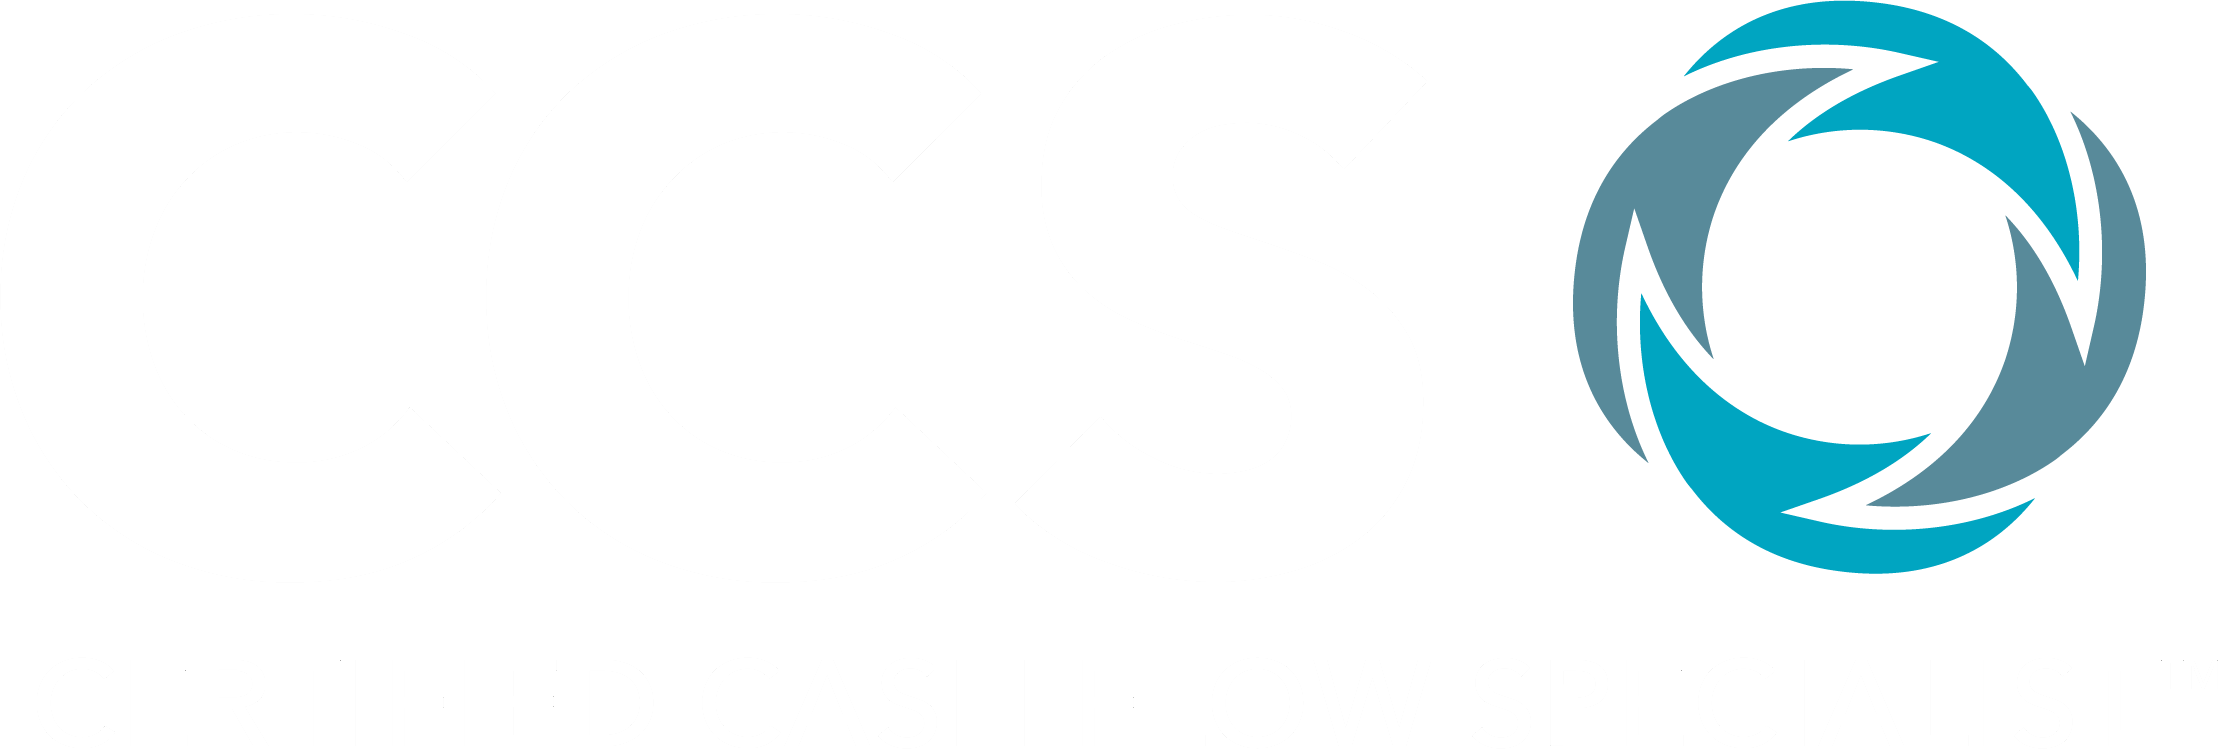 Certified Cash Flow Specialist™ Logo